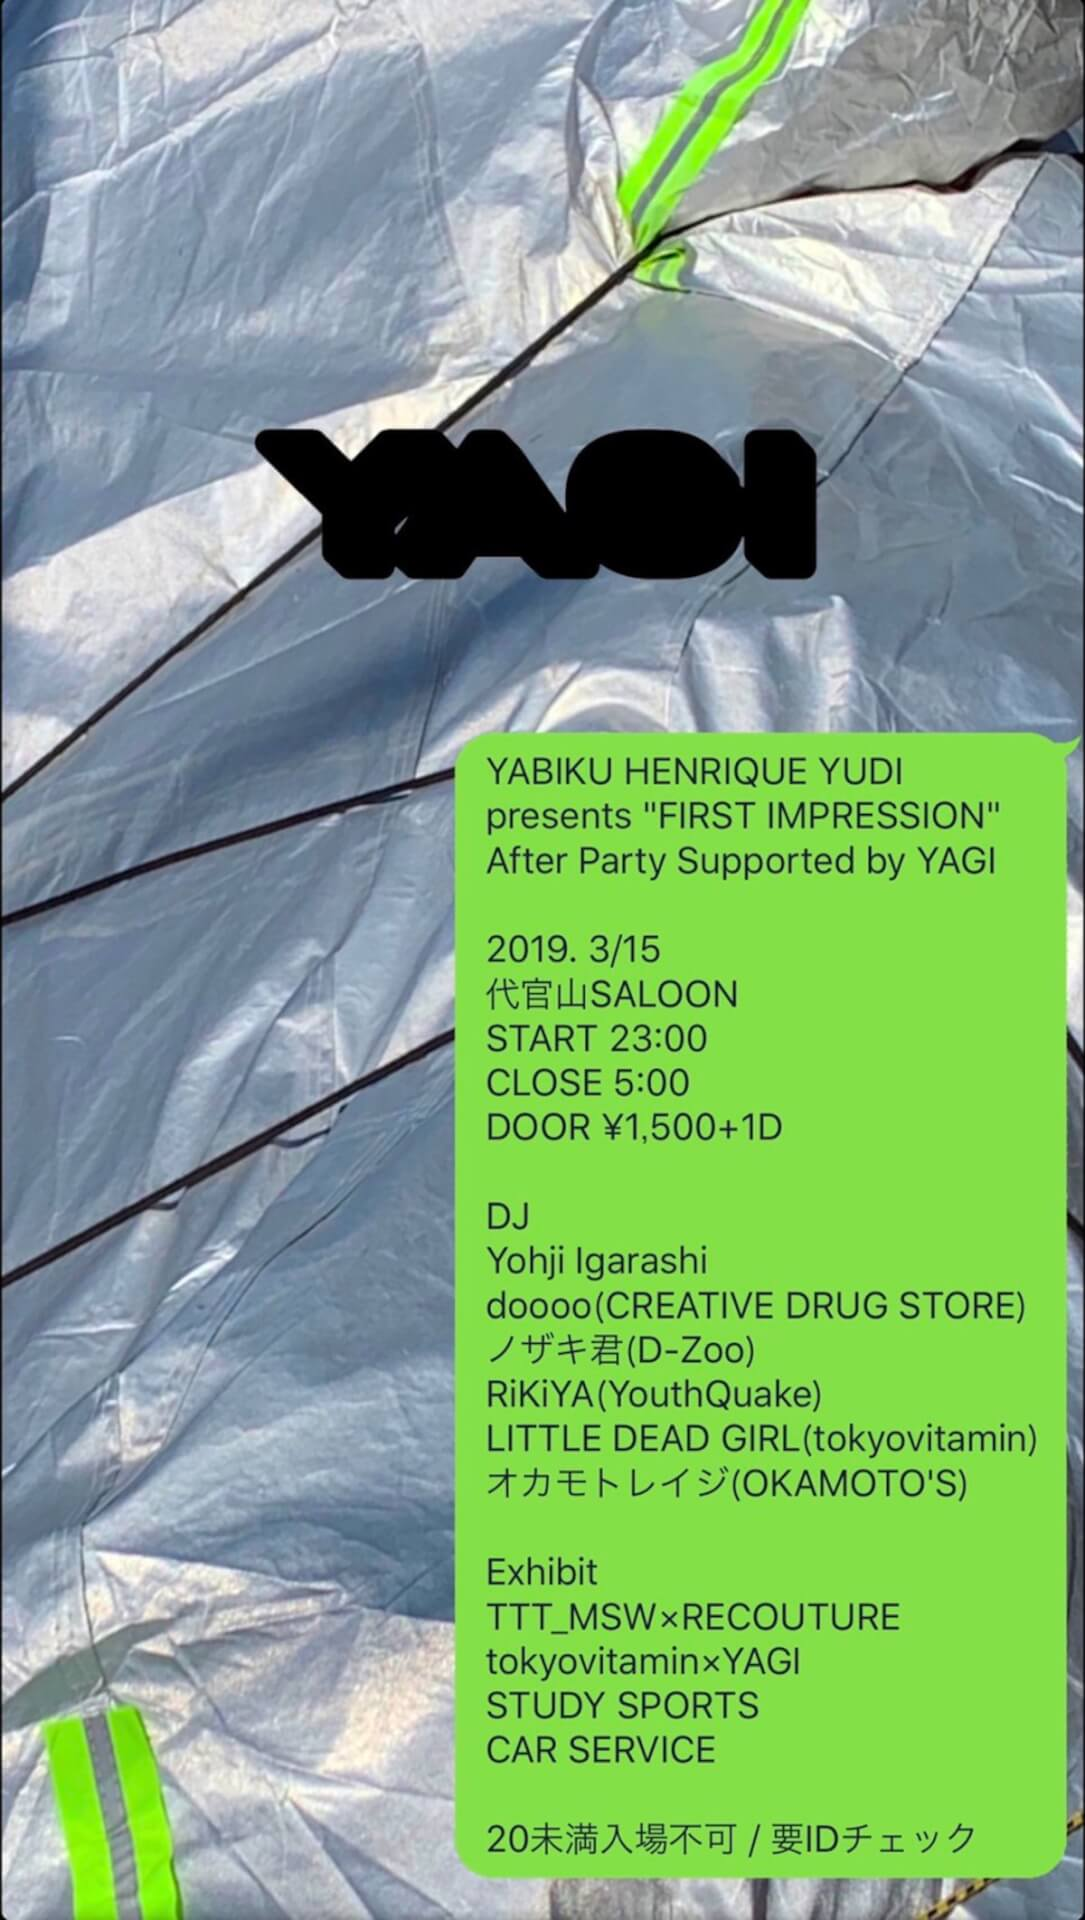 "YABIKU HENRIQUE YUDI presents ""FIRST IMPRESSION"" After Party Supported by YAGI"